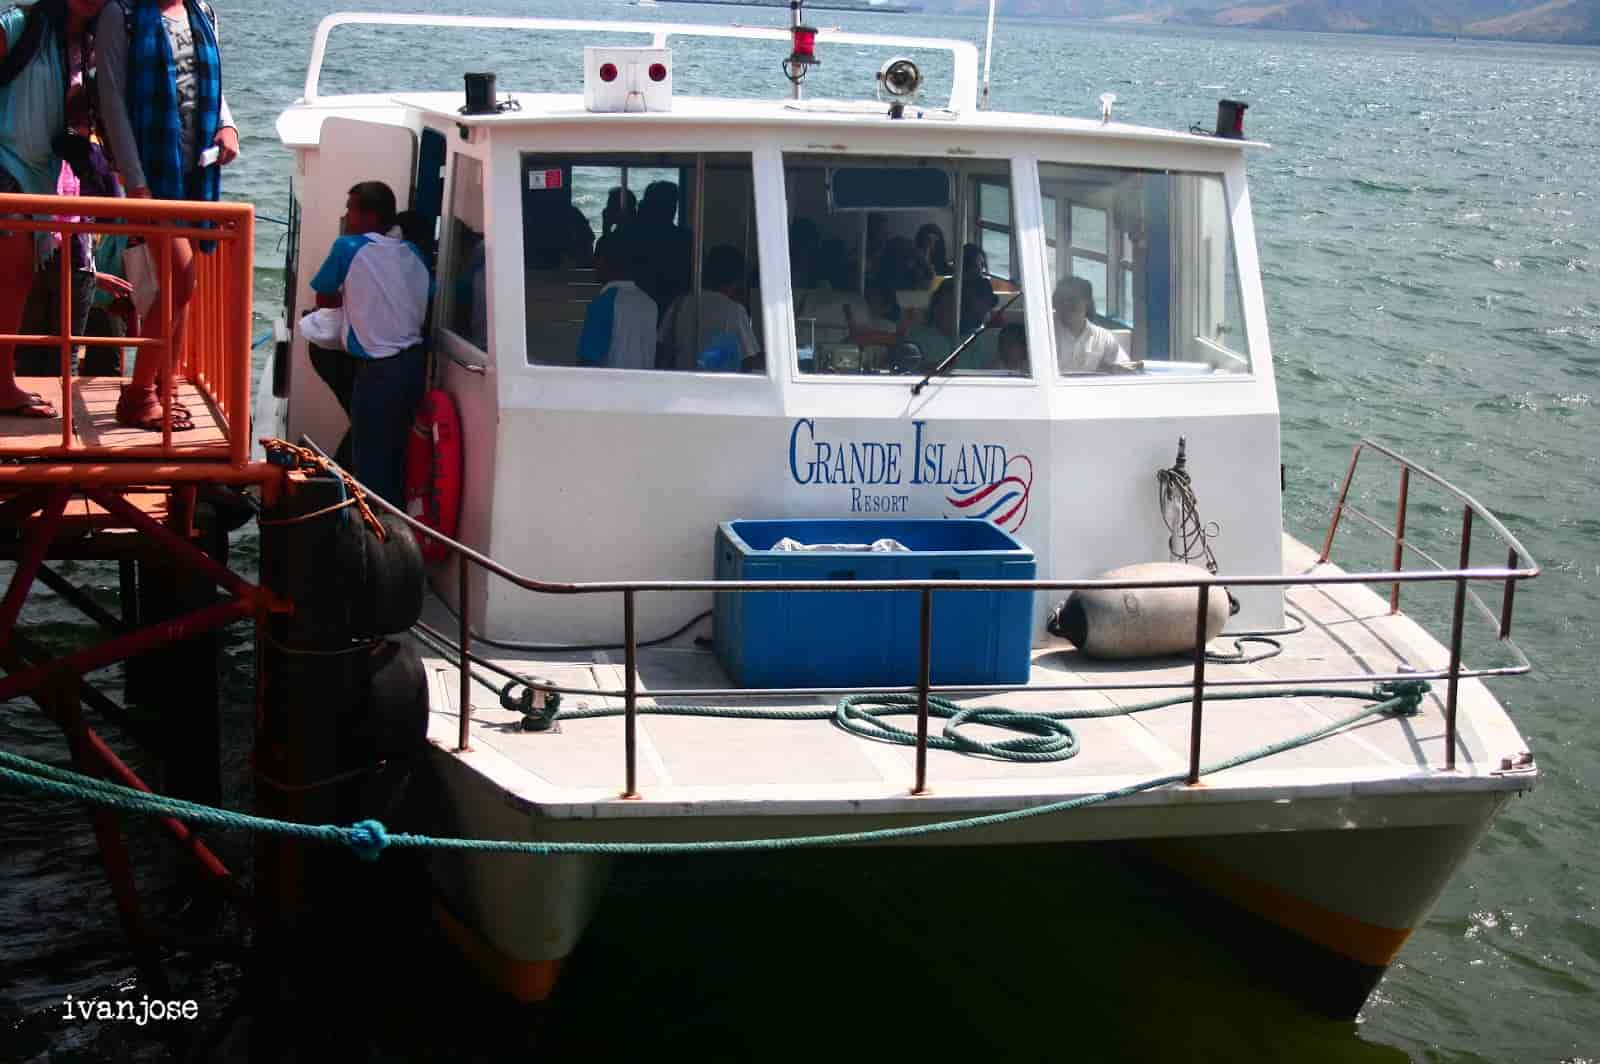 Ferry boat that took us to Grande Island Resort